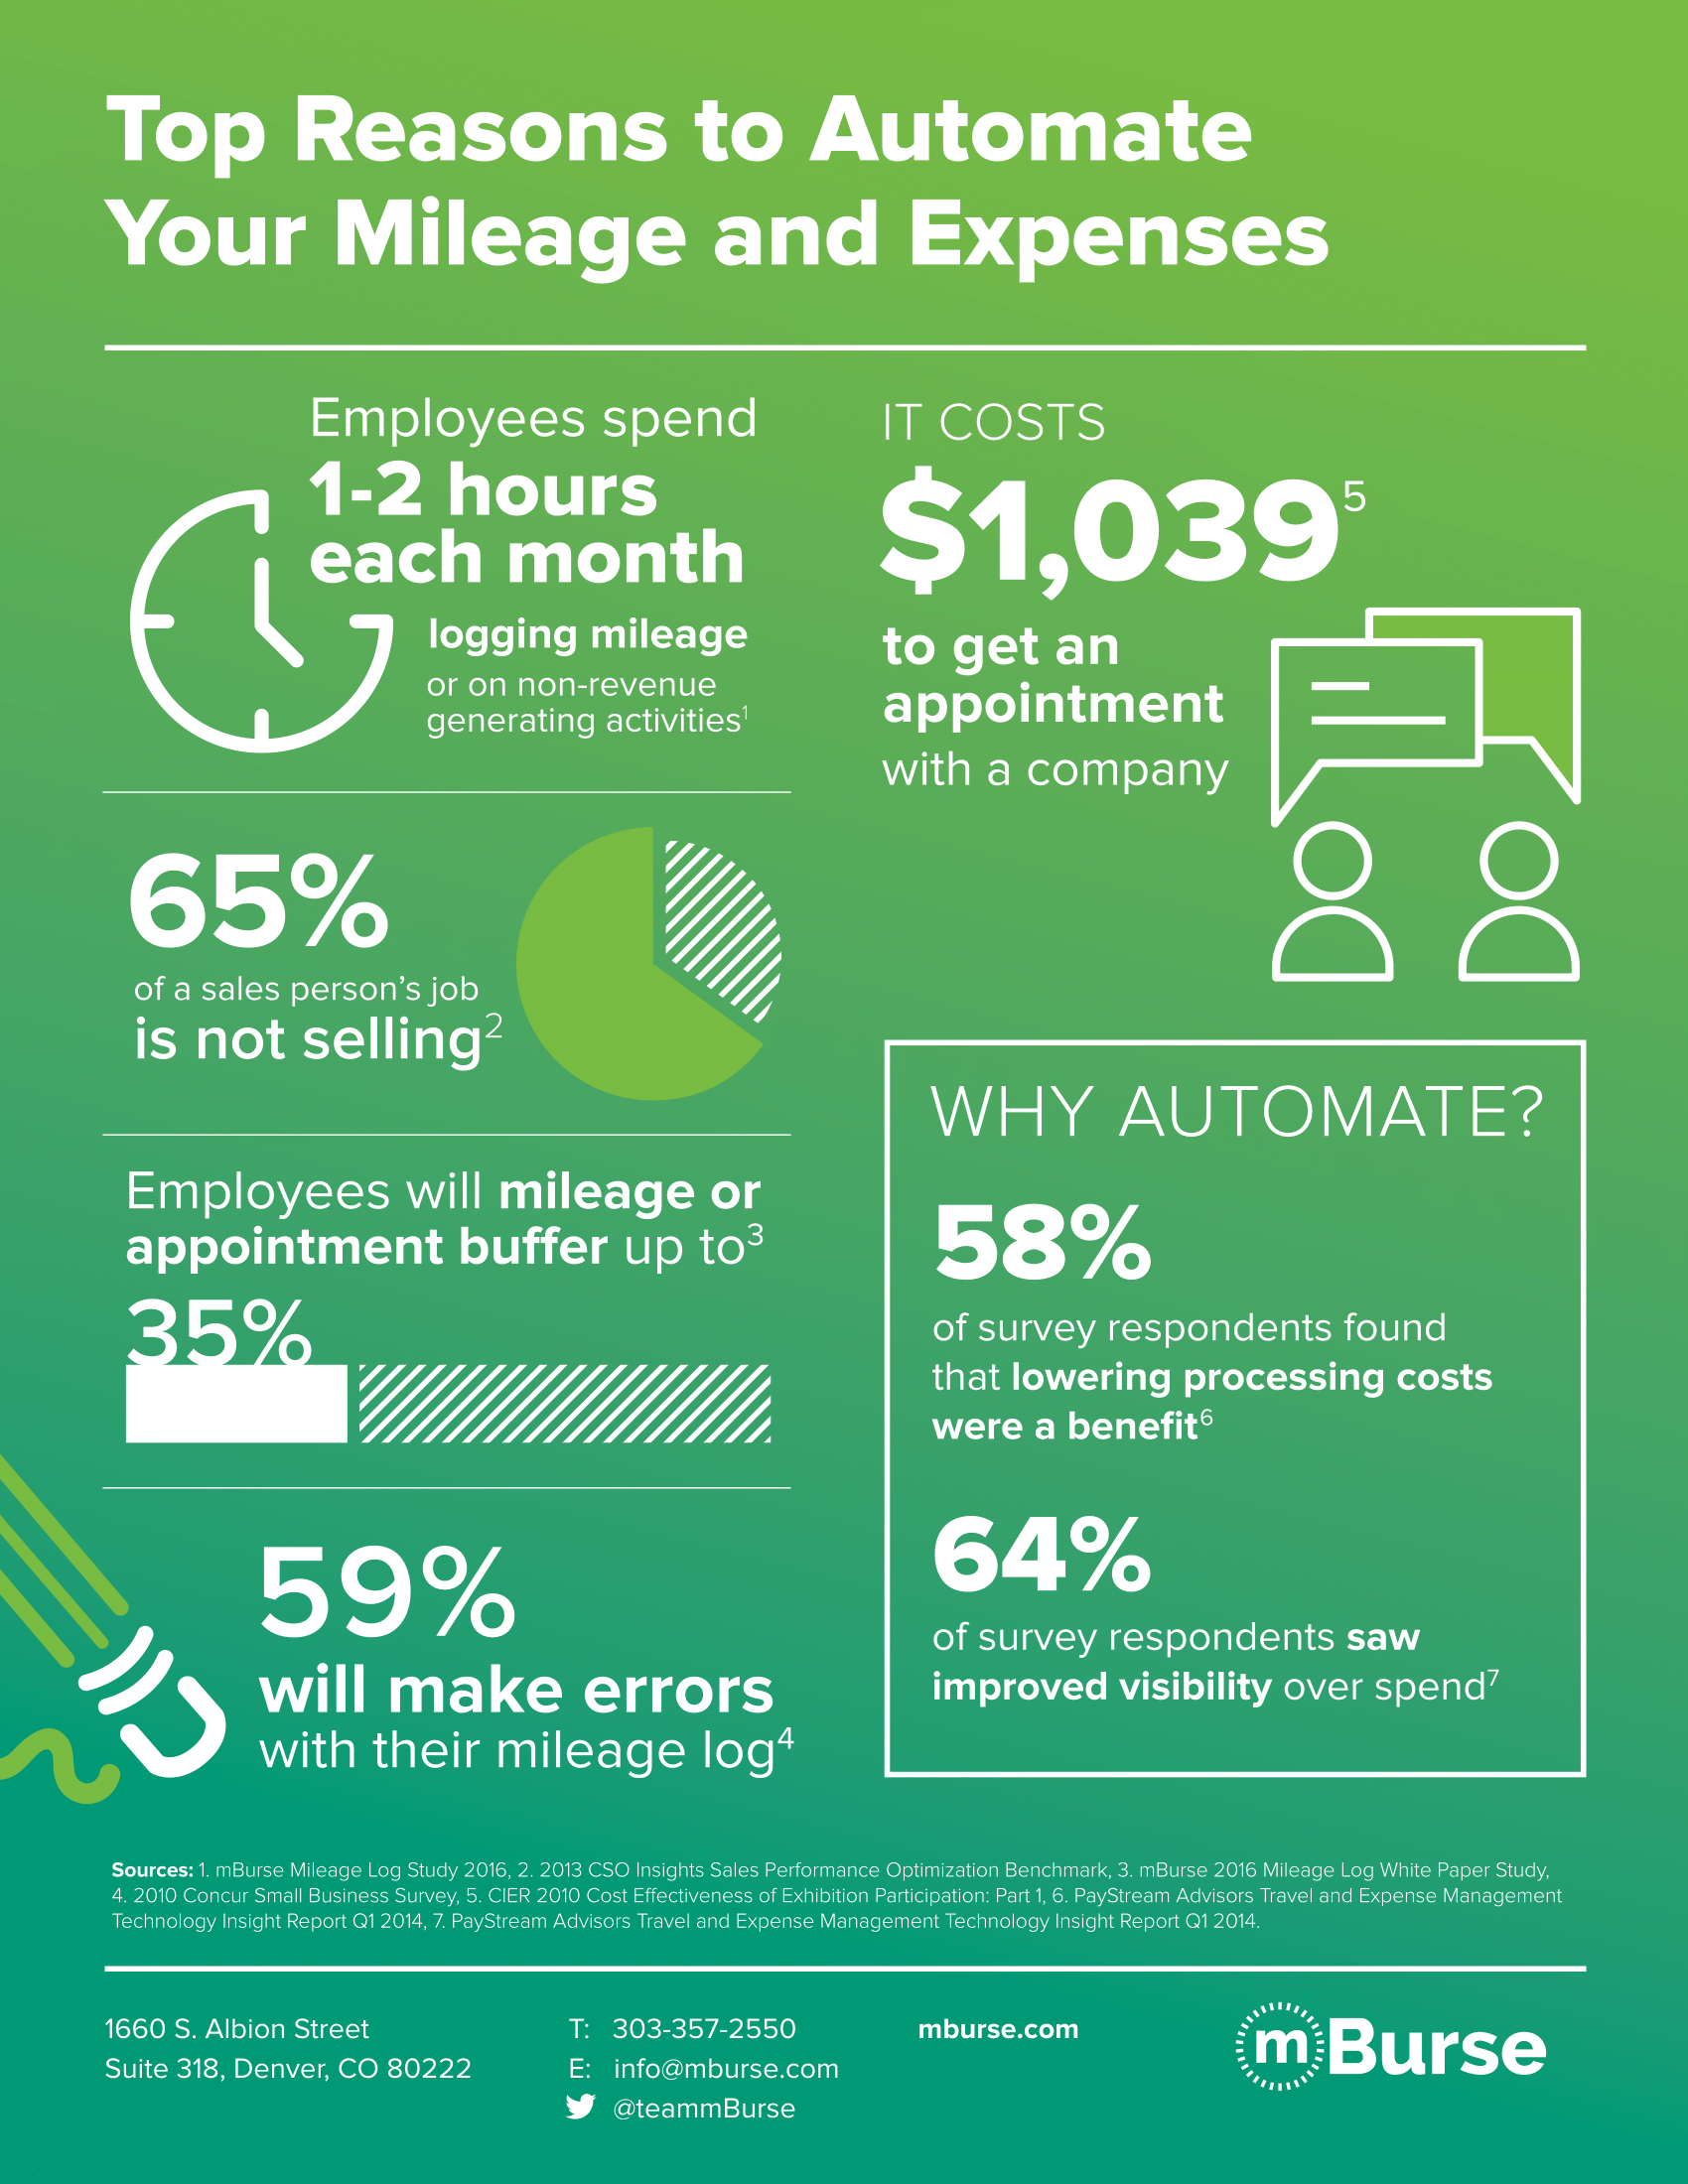 Top Reasons to Automate Your Mileage and Expenses infographic